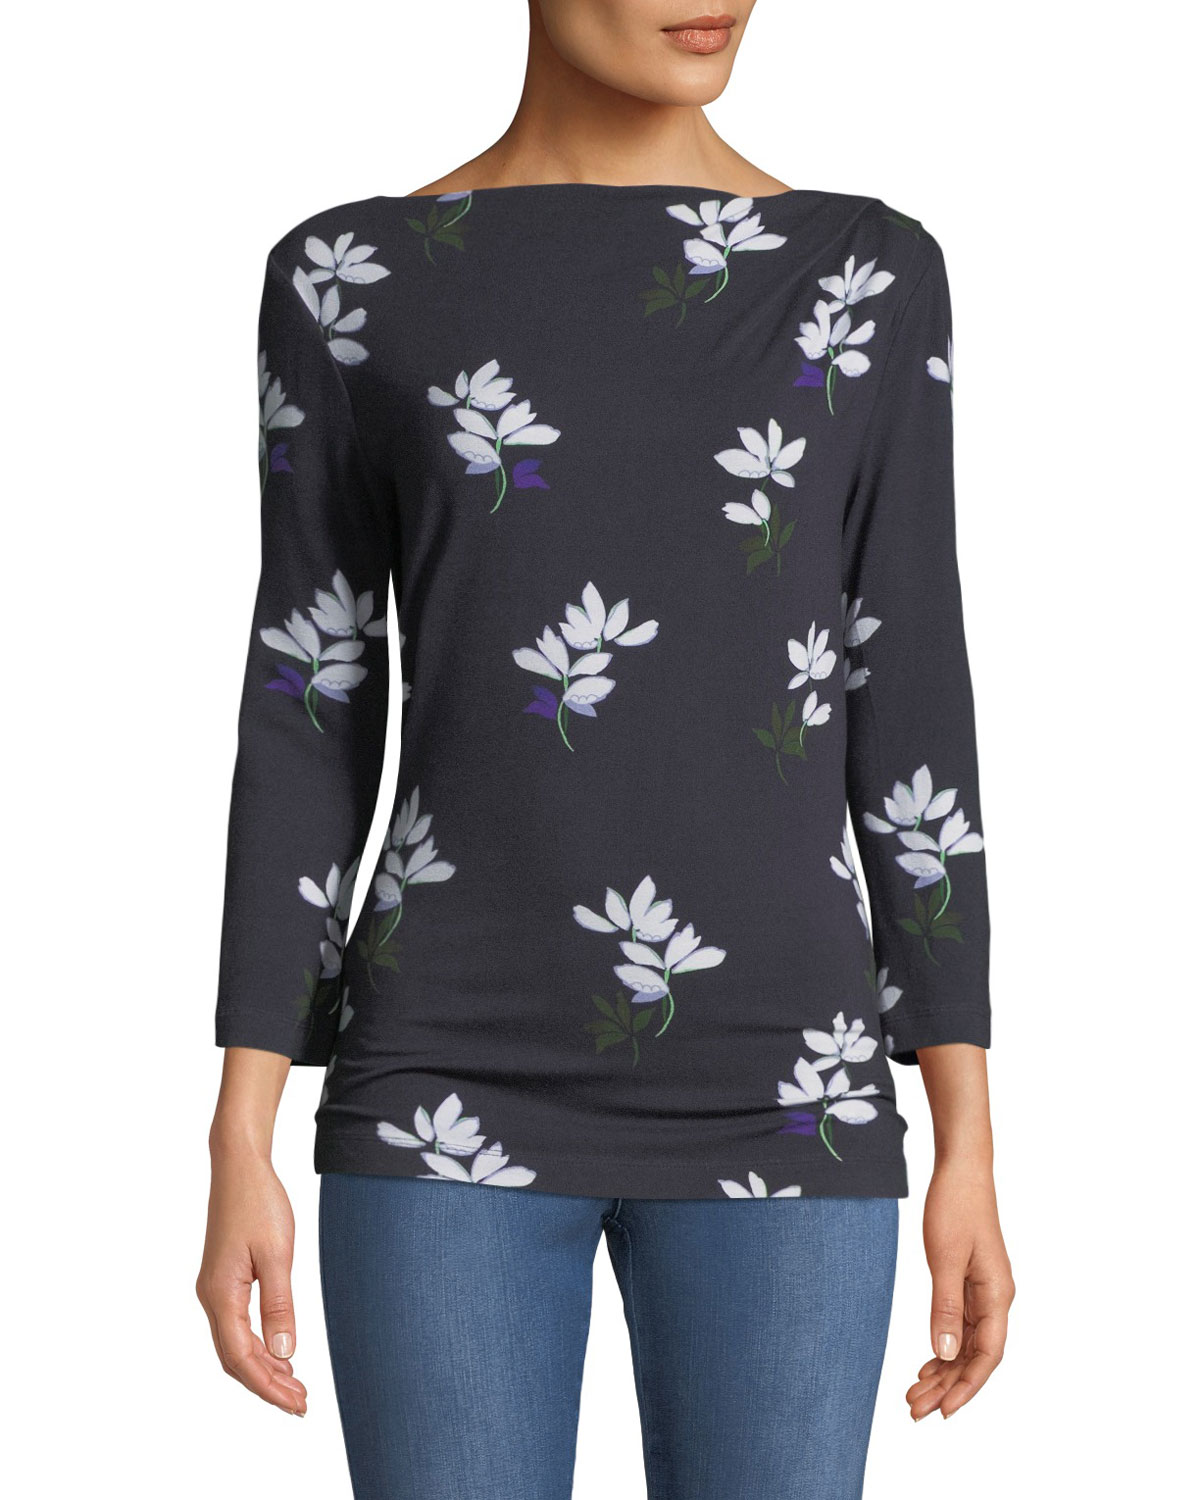 3/4-Sleeve Painted Floral Jersey Drape T-Shirt in Navy Multi